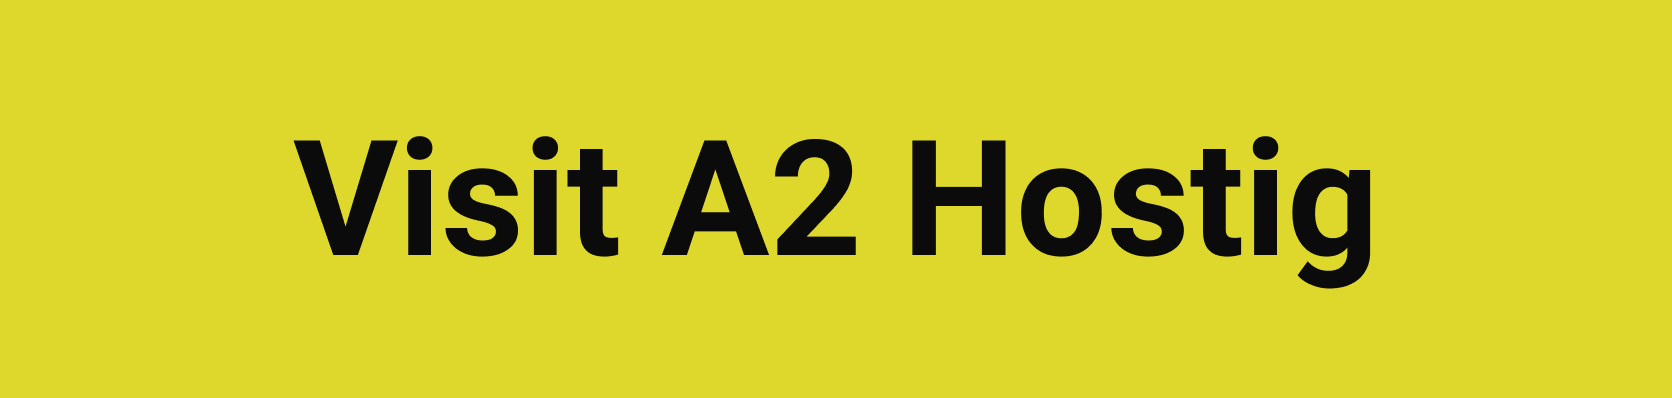 A2 Hostin - vigocart